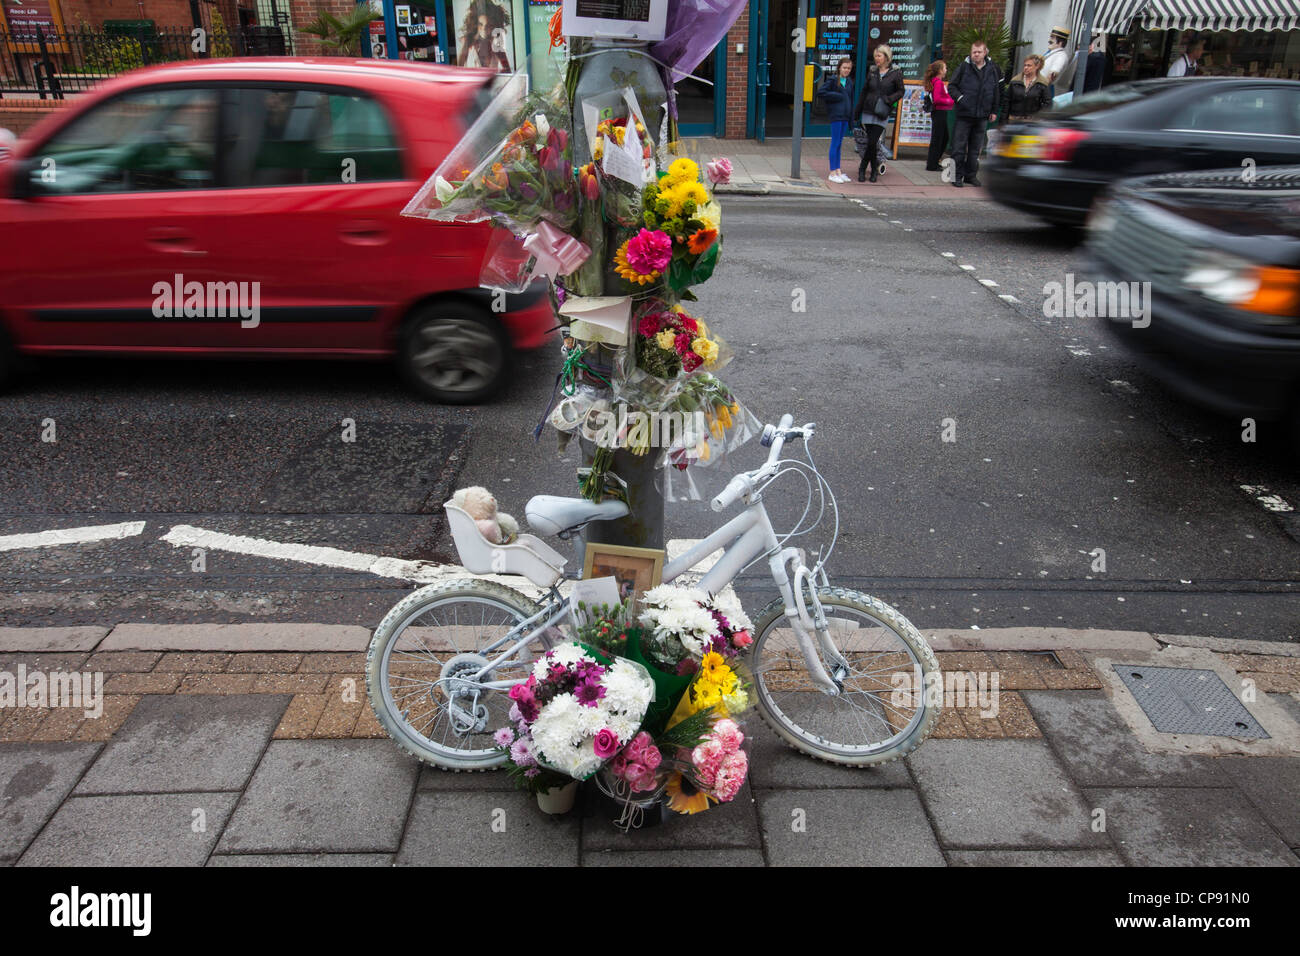 A roadside tribute to a road accident victim in Birmingham, UK - Stock Image